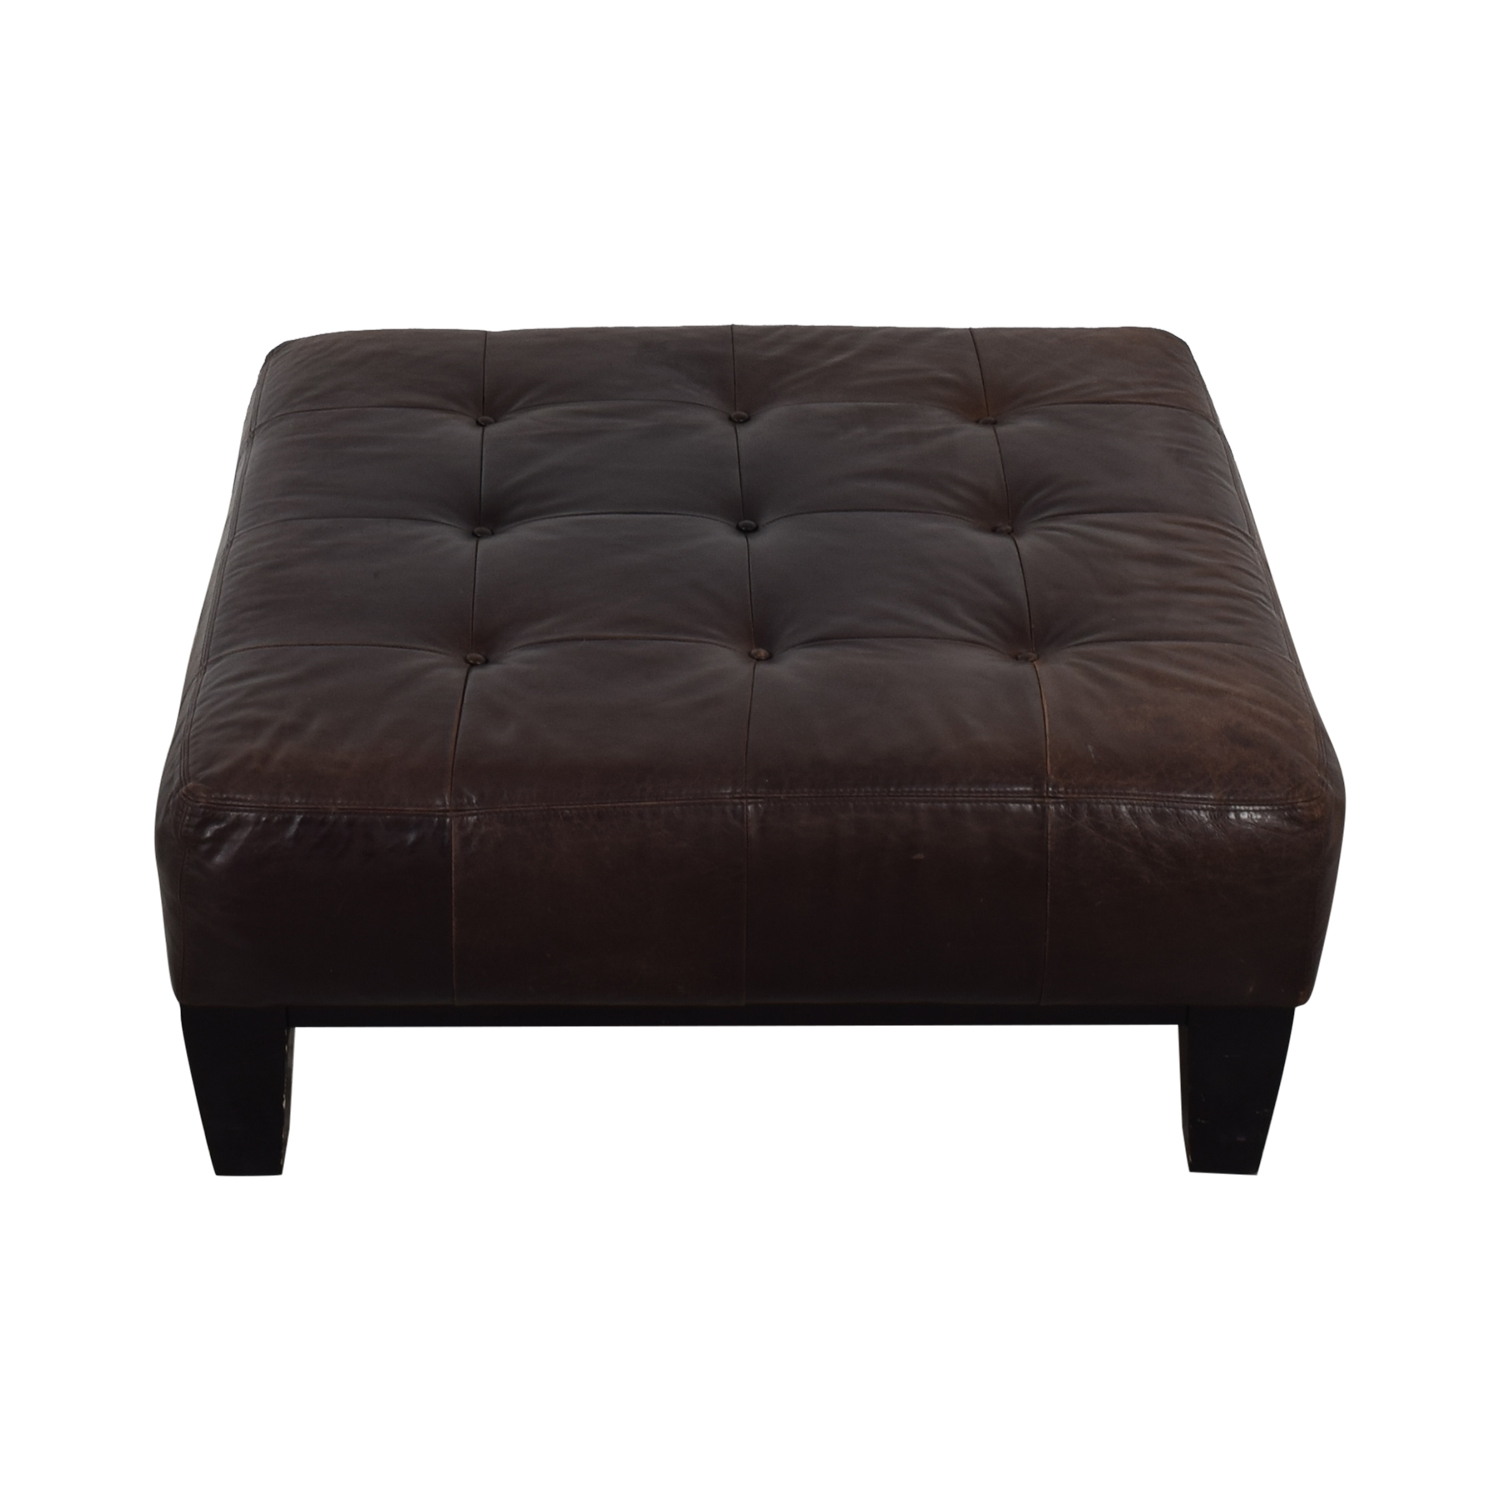 buy Pottery Barn Brown Tufted Ottoman Pottery Barn Ottomans